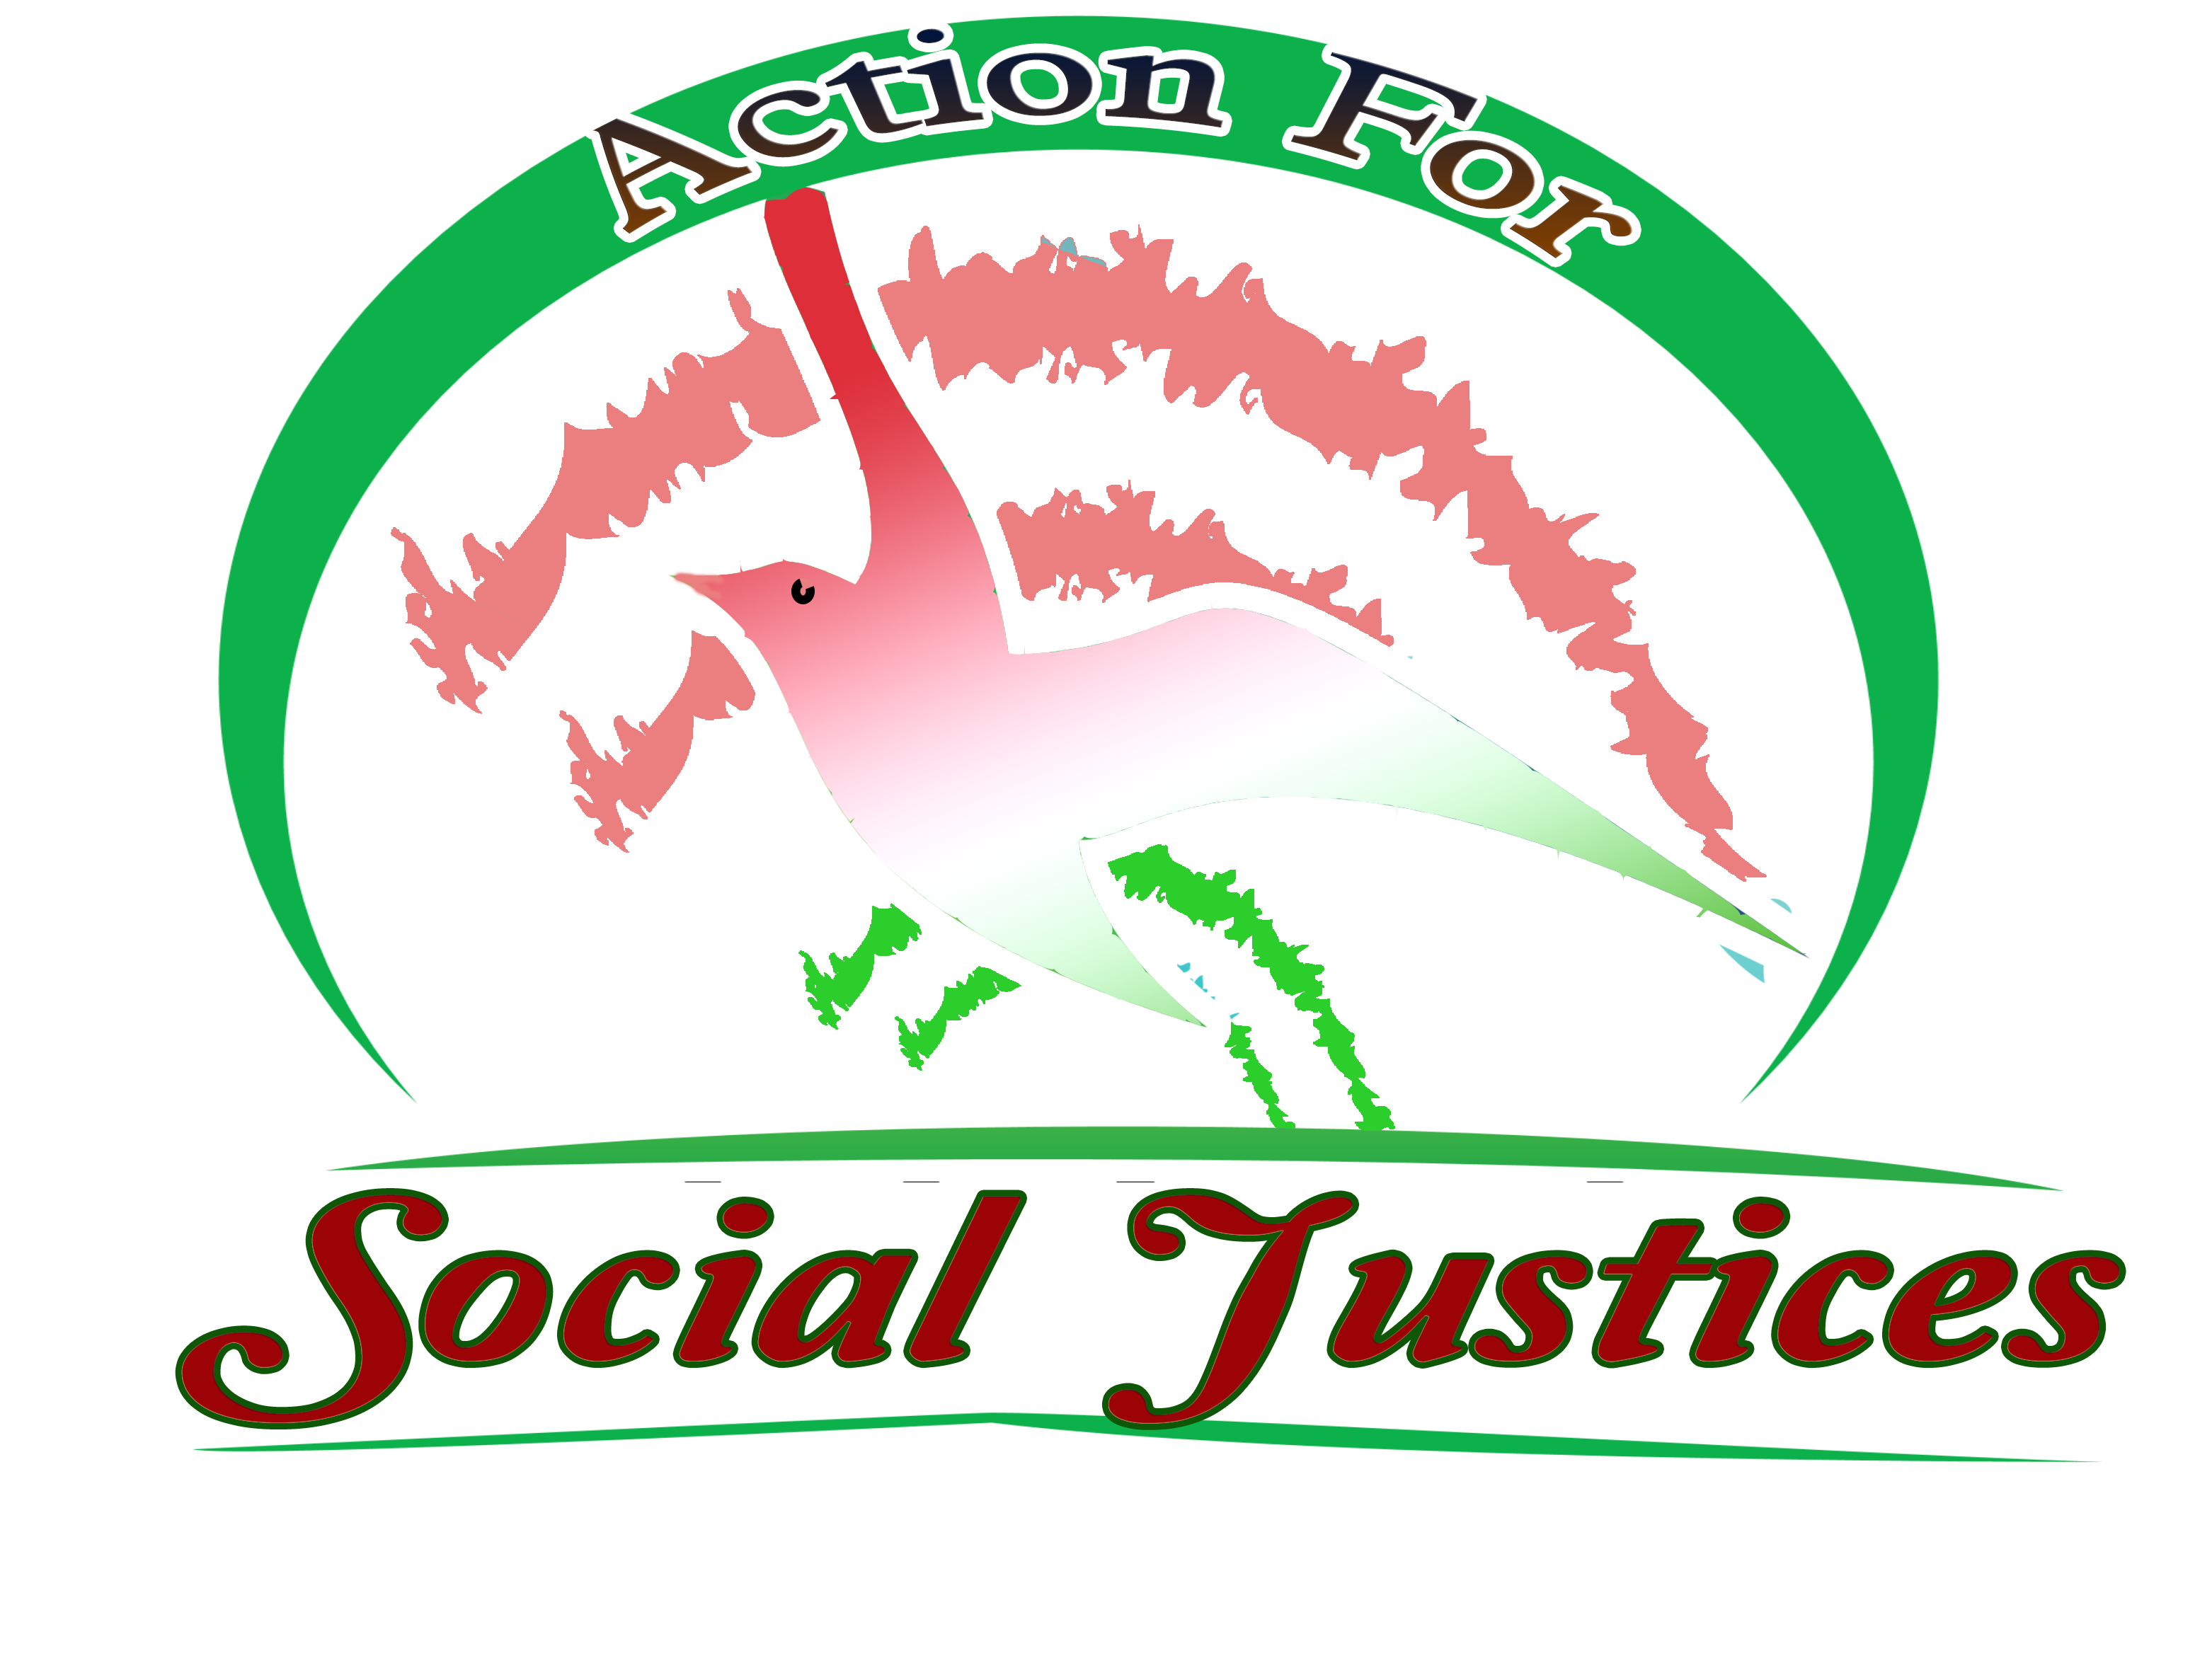 Action for Social Justice